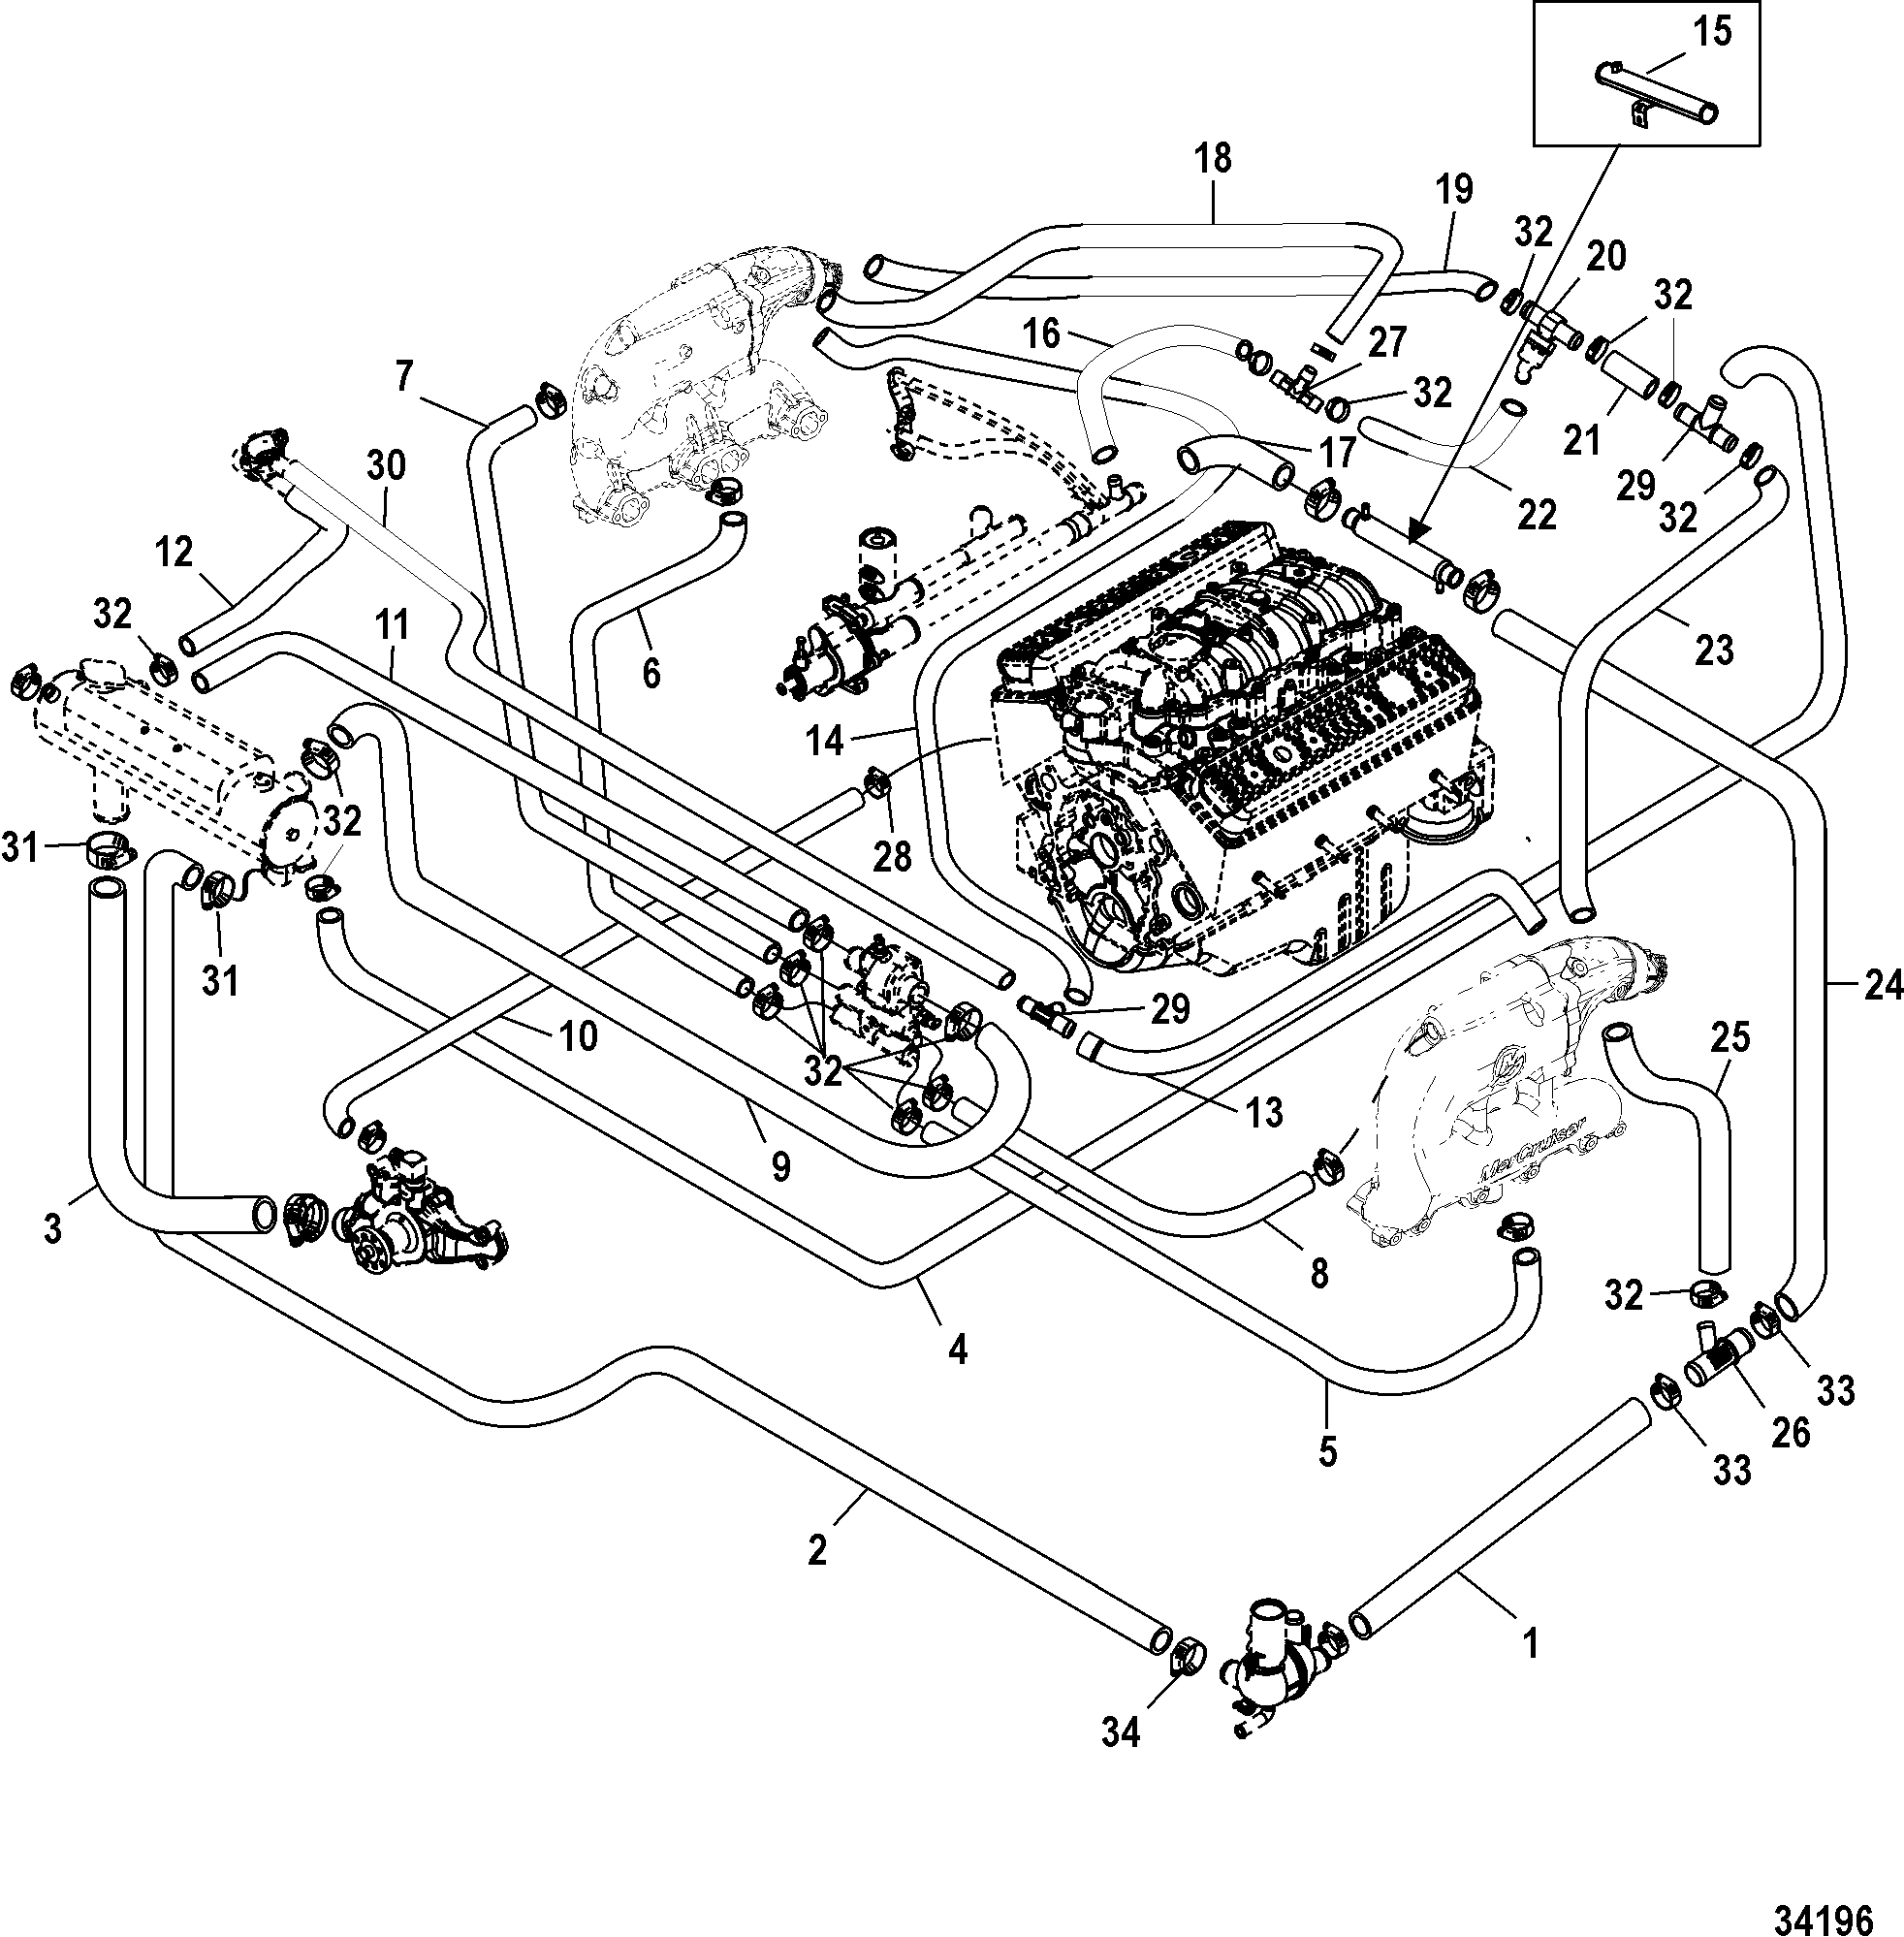 WRG-7792] 454 Mercruiser Engine Wiring Diagram